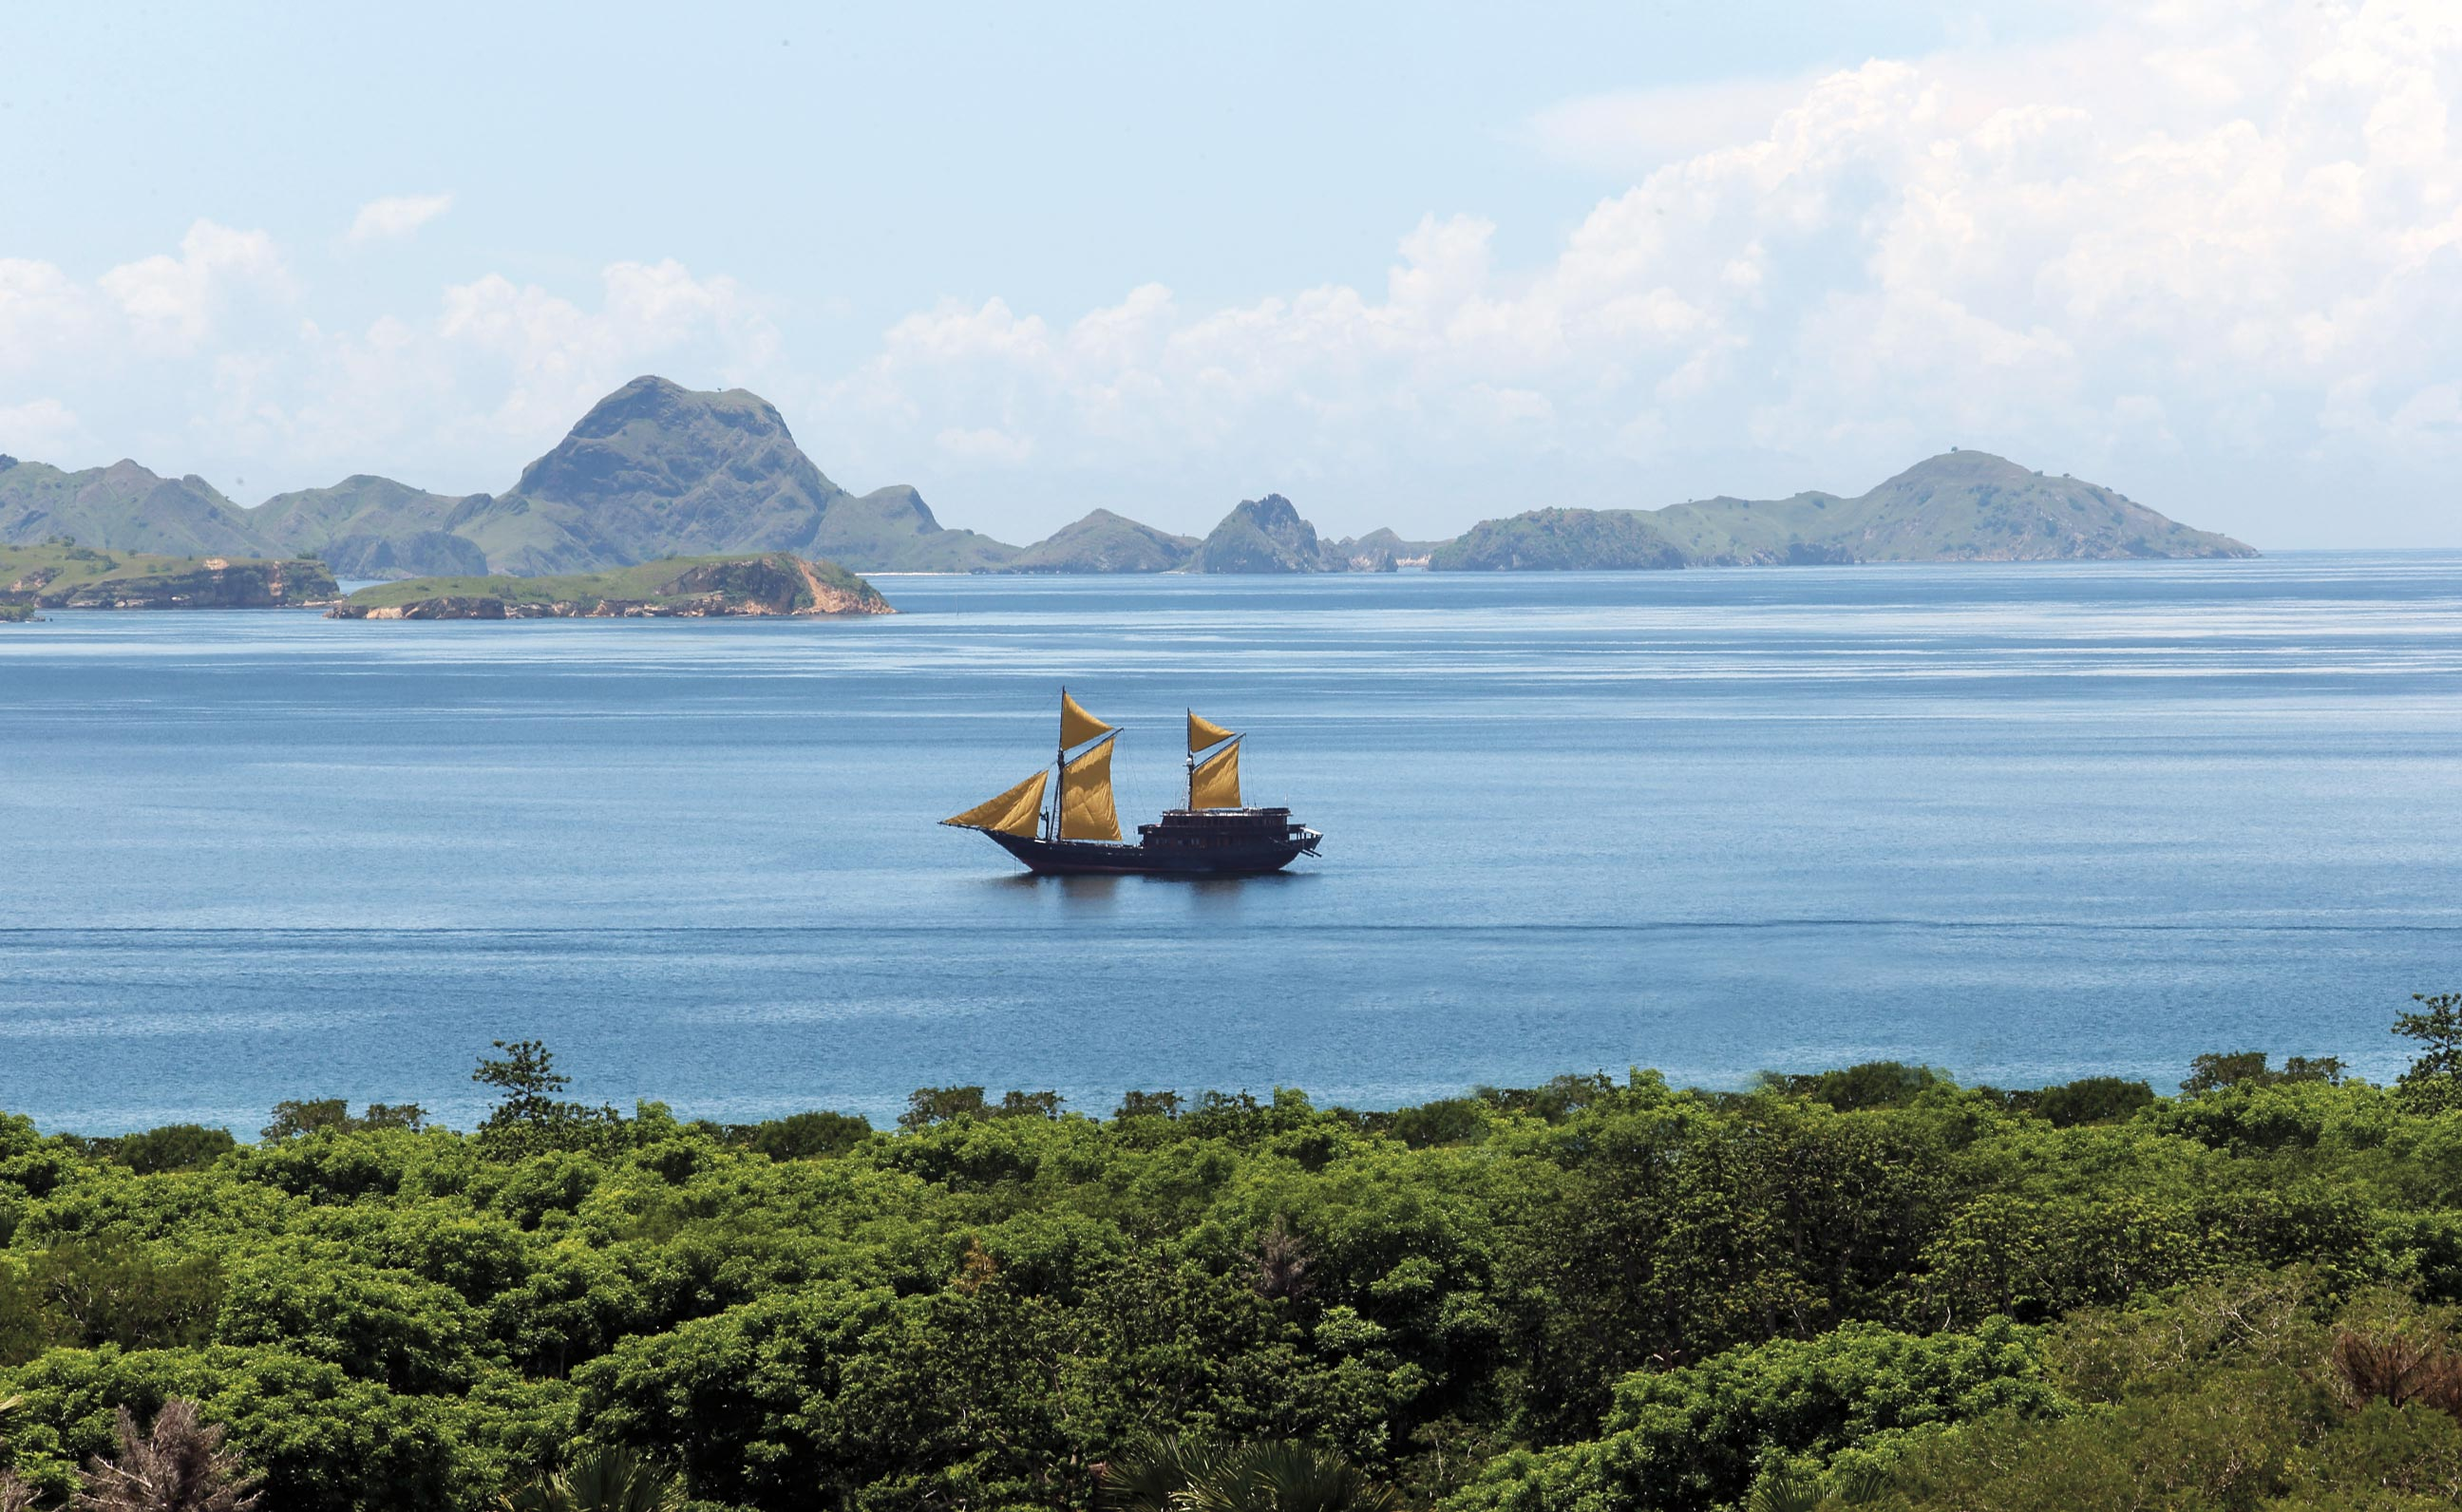 The Alila Purnama cruises through the Komodo Islands.